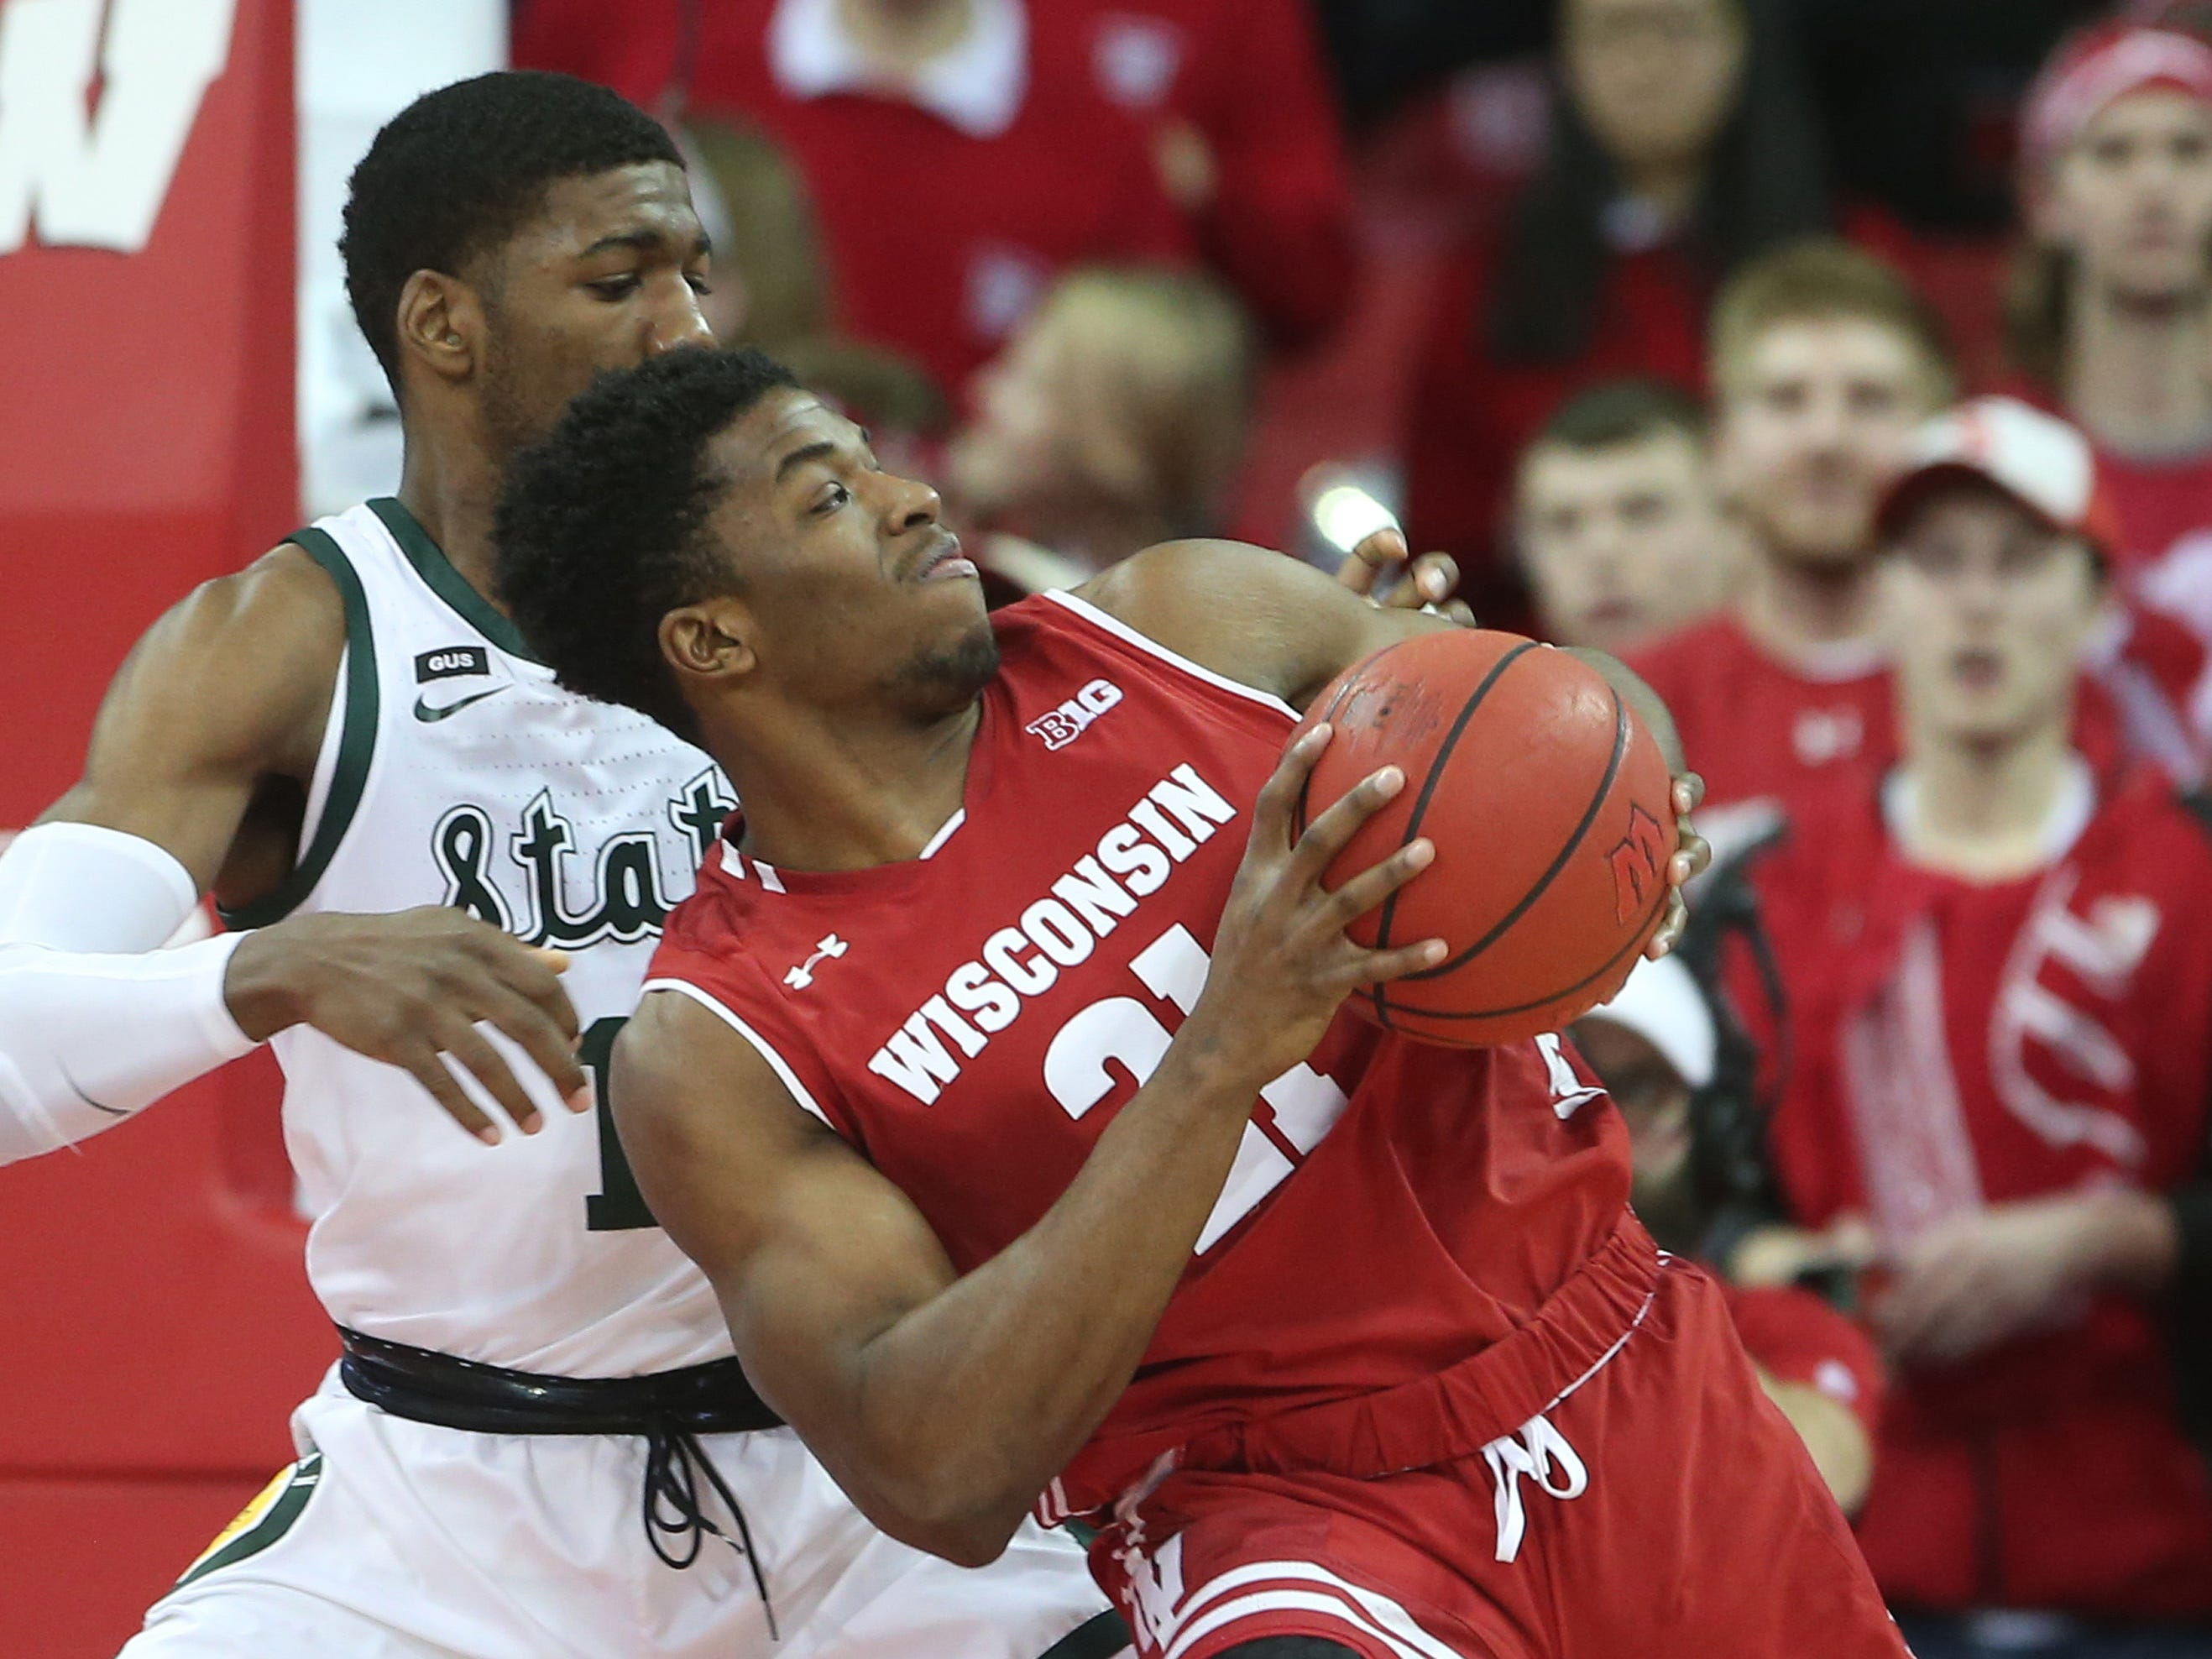 Wisconsin Badgers guard Khalil Iverson (21) controls the ball as Michigan State Spartans forward Aaron Henry (11) defends during the first half at the Kohl Center.